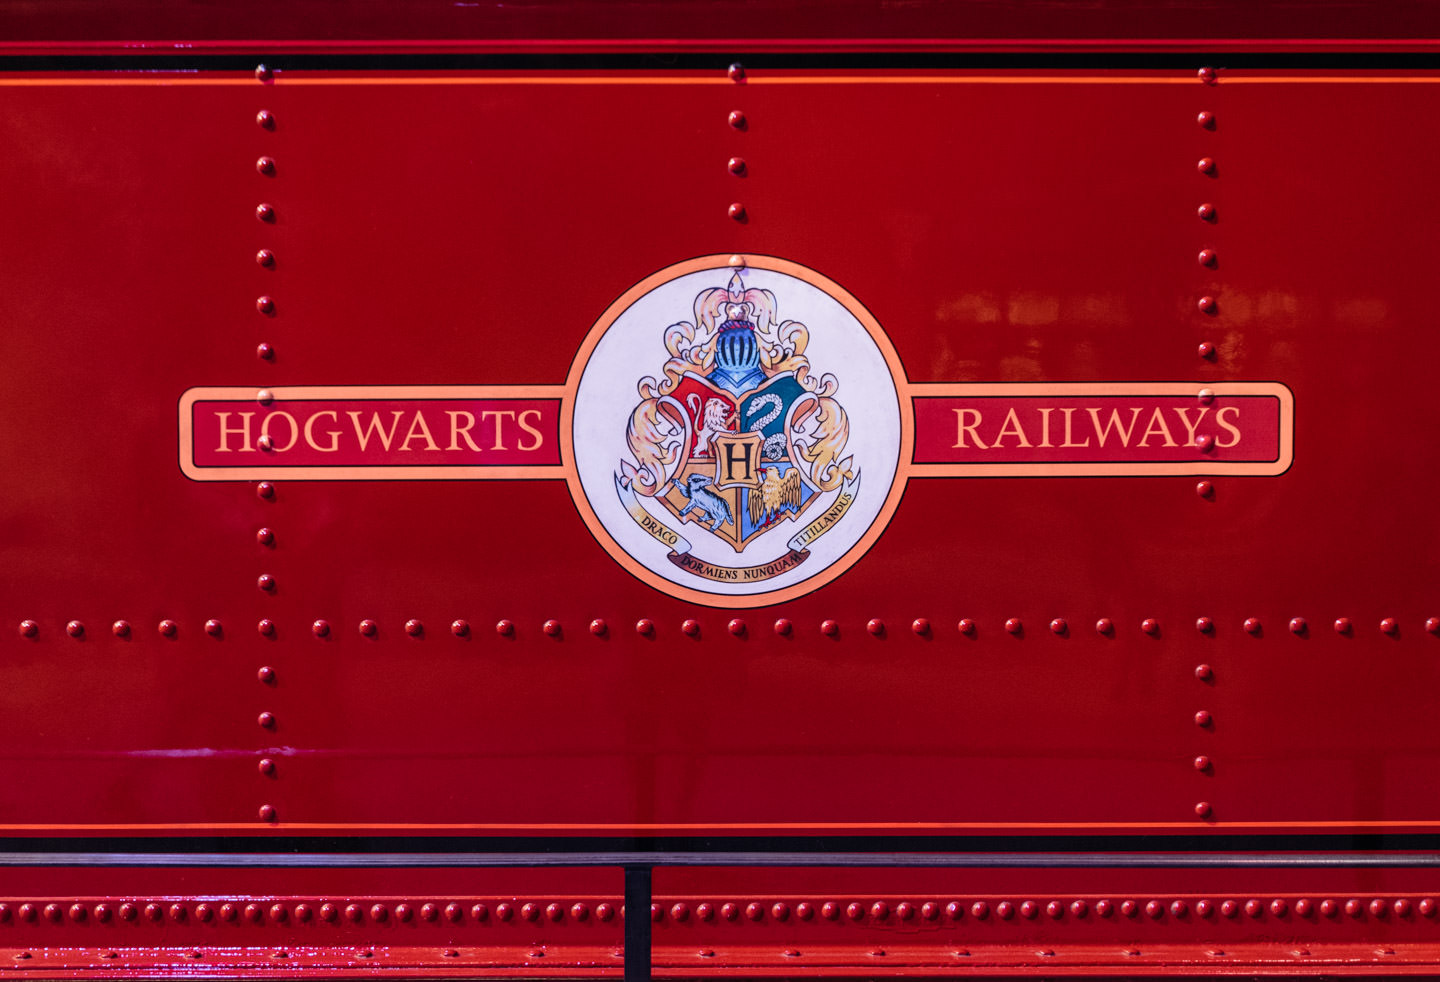 Blog-Mode-And-The-City-Lifestyle-Visite-Studios-Harry-Potter-Londres-20